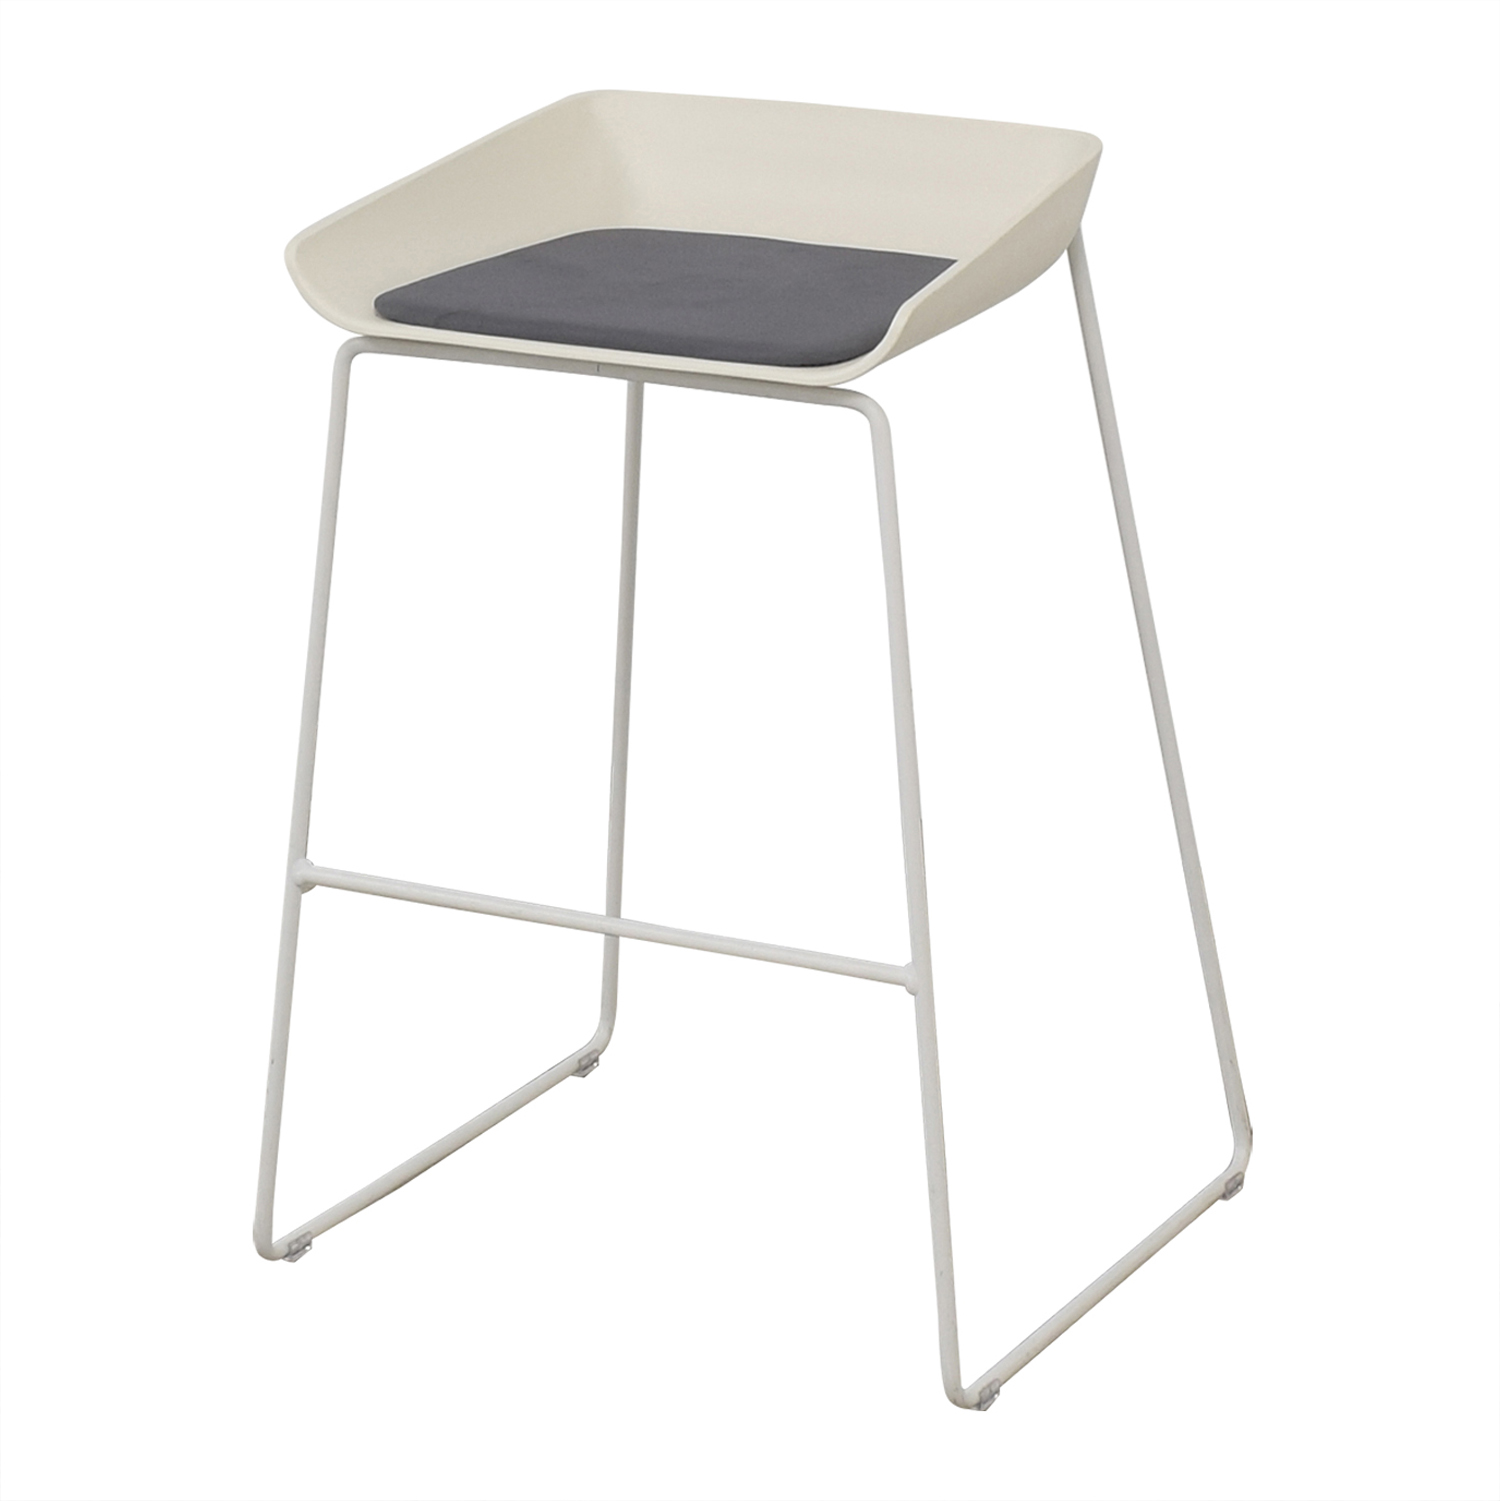 Steelcase Scoop Modern Stools Steelcase